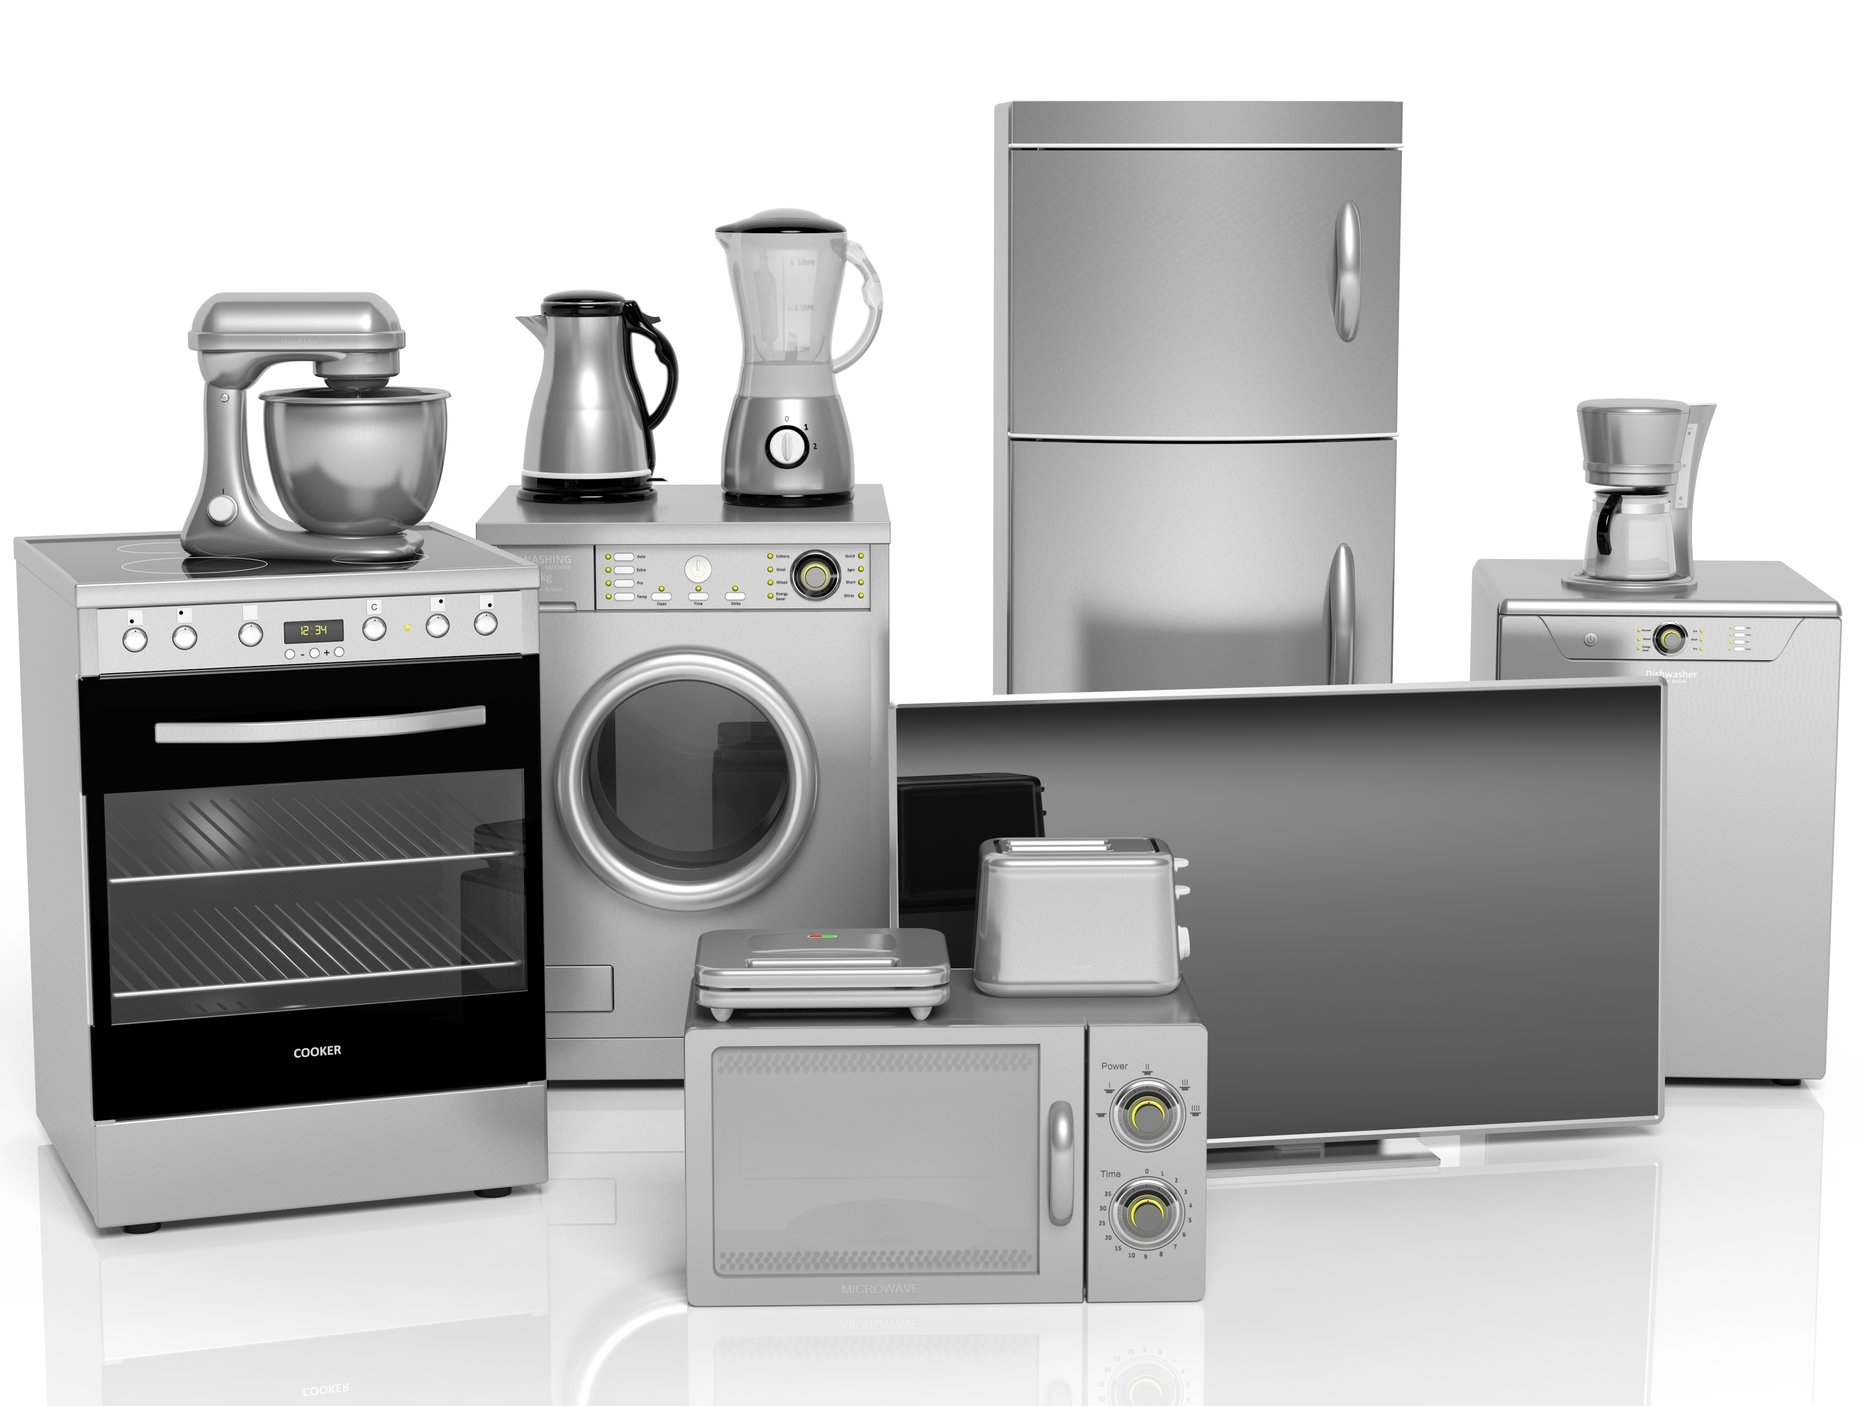 Home Appliances and Electronics Packaging - Enabling home appliances with imperceptible noise profiles and electronic device packaging with excellent shock damping.